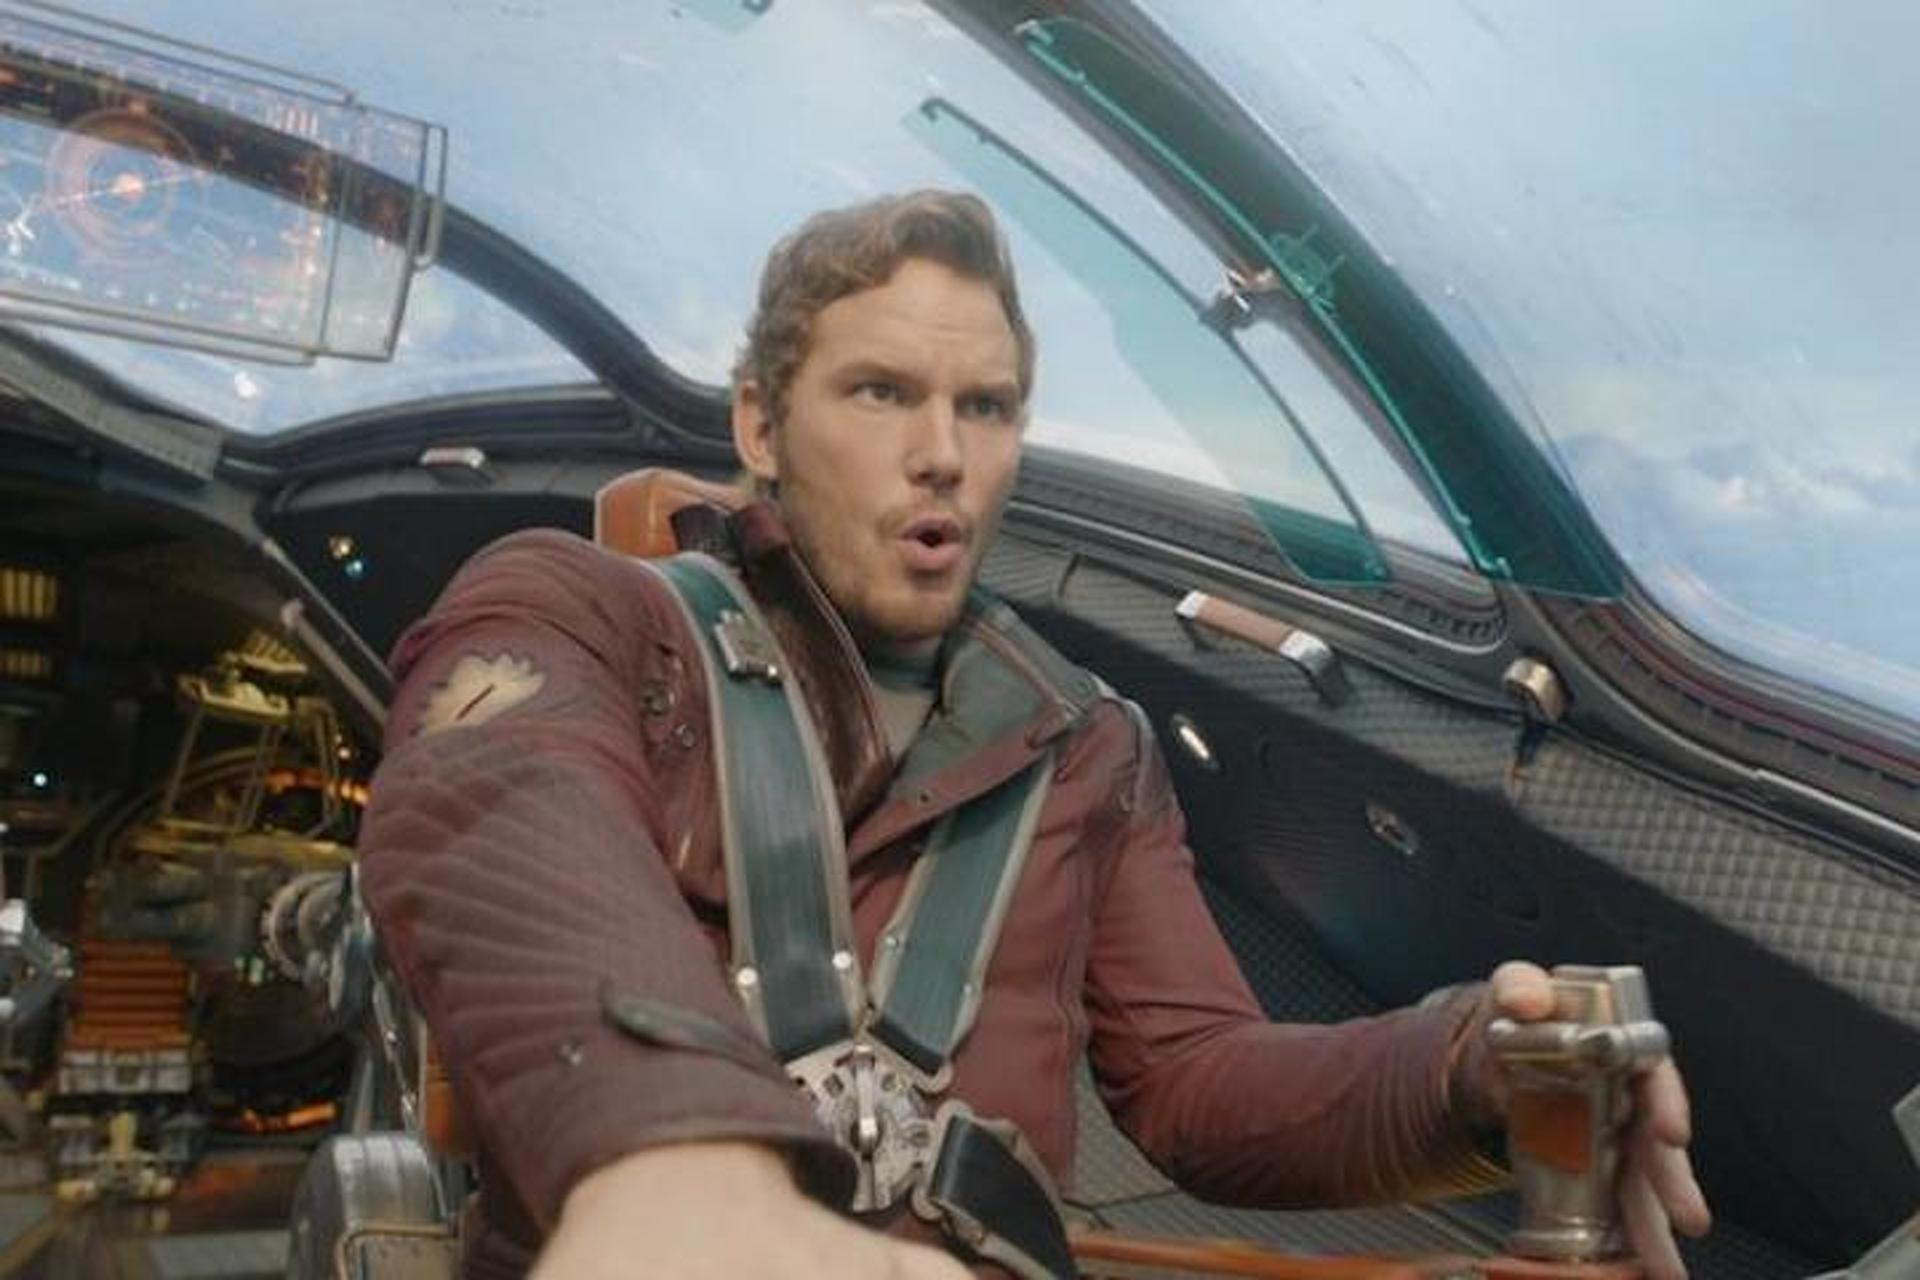 'Guardians of the Galaxy' Star Chris Pratt Got His Break While Living in a Van